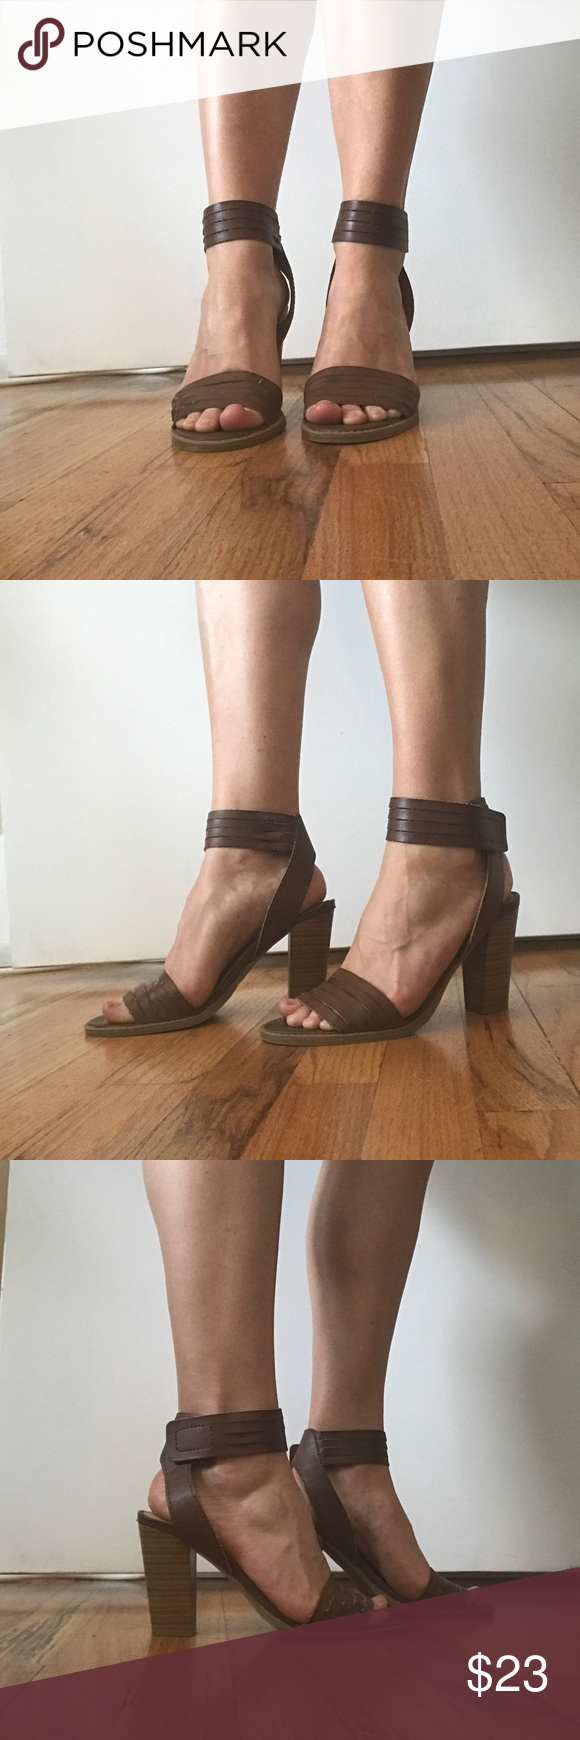 Report Strappy Brown Heel Sandals, Size 8 Super cute and very comfortable size 8 Report Heeled Sandals! These shoes are in great shape and have tons of wear left in them! They looks like free People heels! Also, super easy to get on and off with a Velcro strap, it's completely hidden though, no one will ever know. 😍 Report Shoes Heels